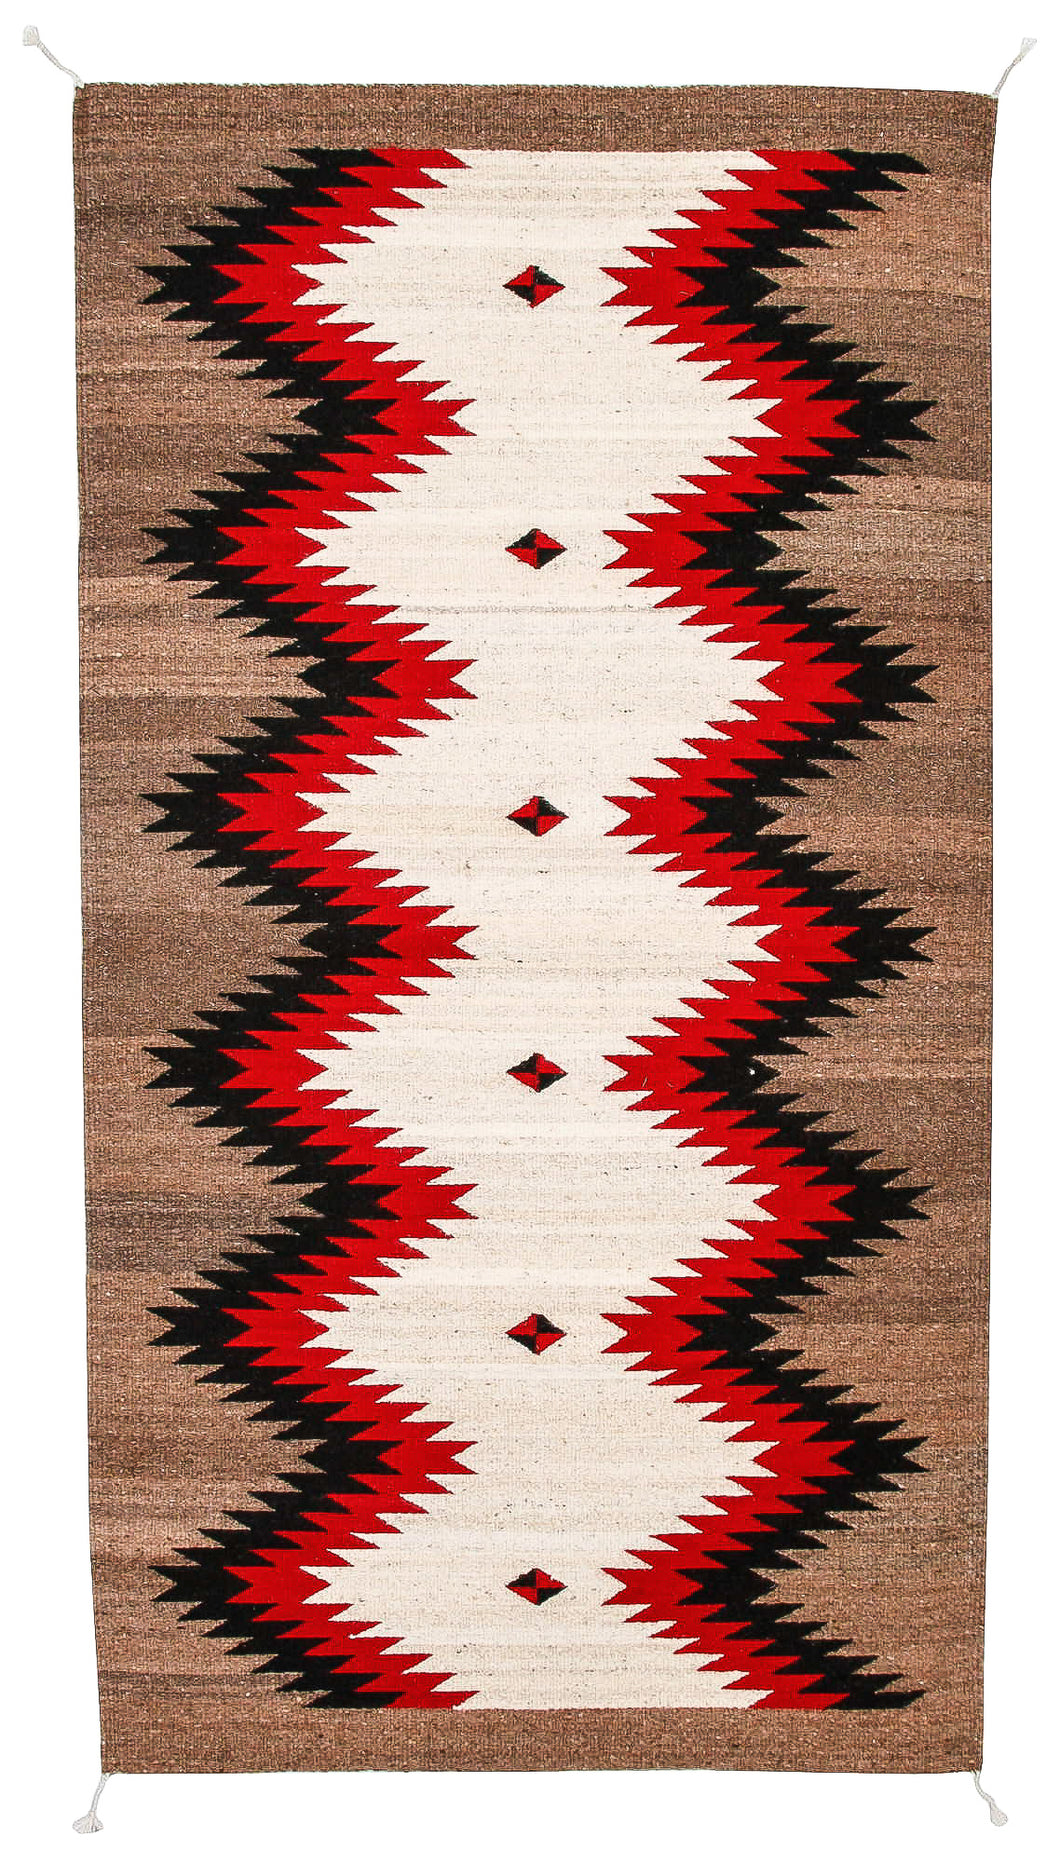 Handwoven Zapotec Indian Rug - Runing Water Wool Oaxacan Textile